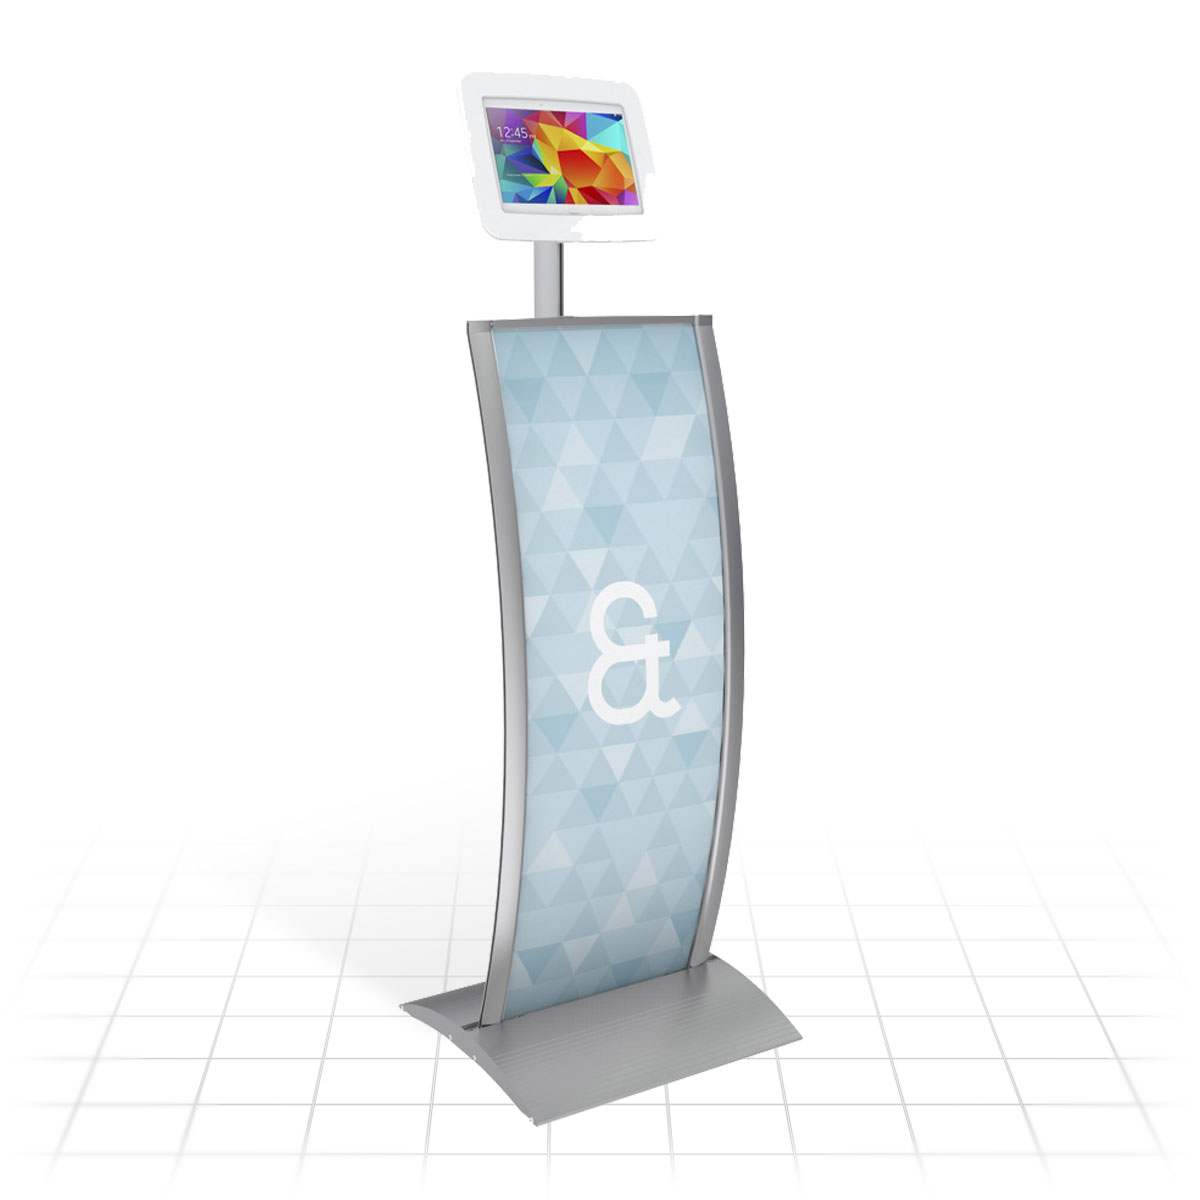 Kiosk Plus Tablet Display Stand | Tablet Display Stands